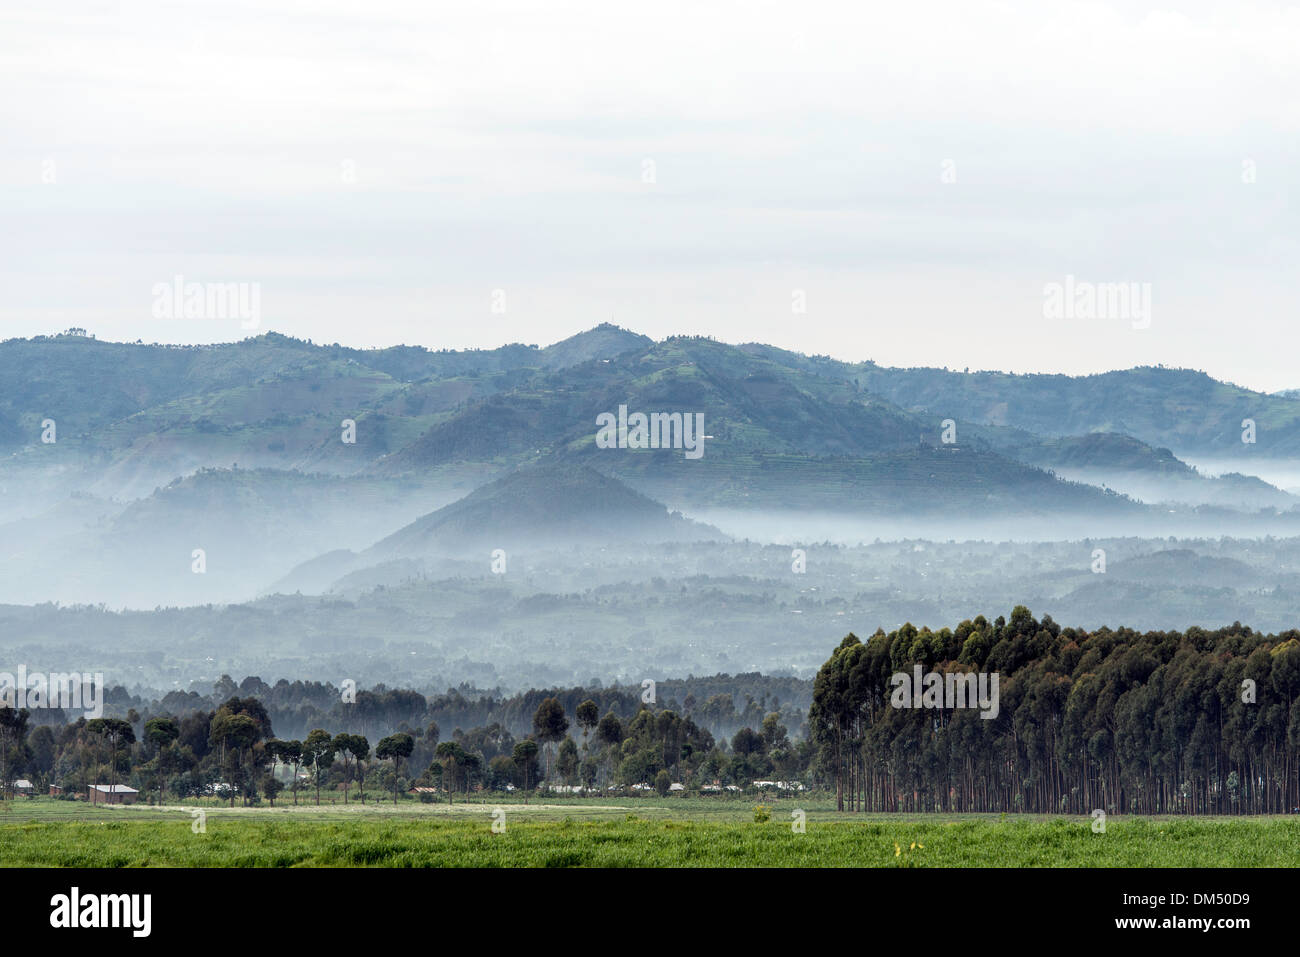 Landschaften-Volcanoes-Nationalpark Ruanda Afrika Stockbild